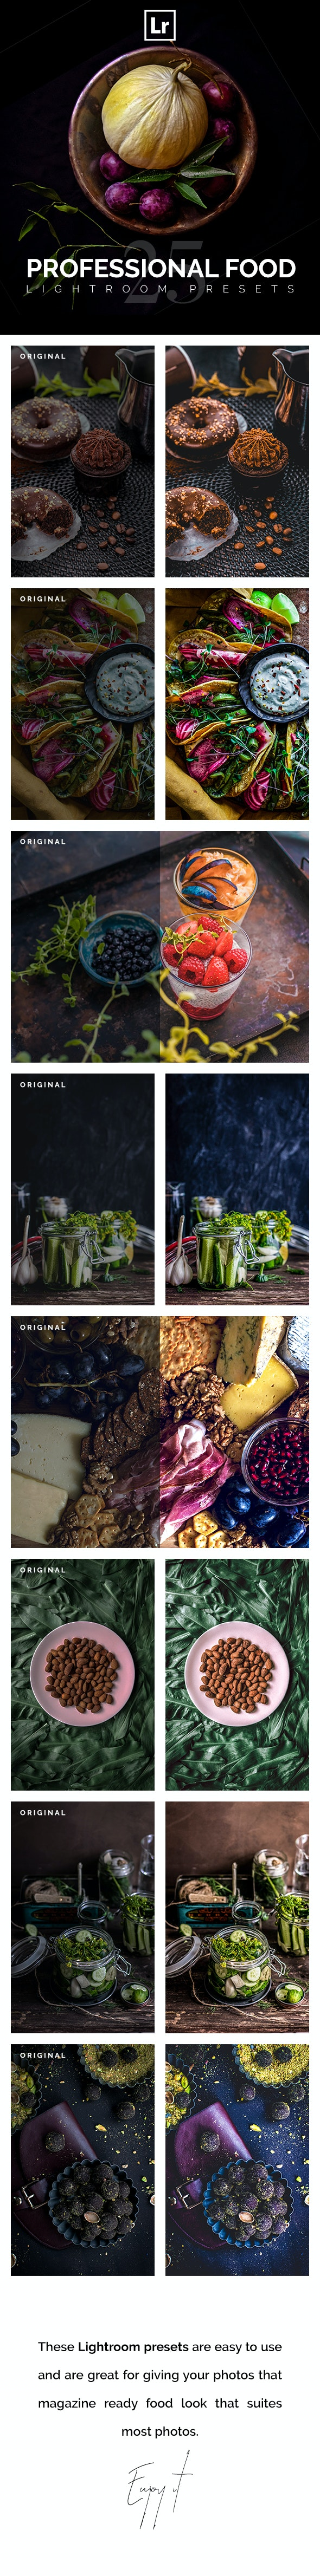 Professional Food Lightroom Presets - Lightroom Presets Add-ons